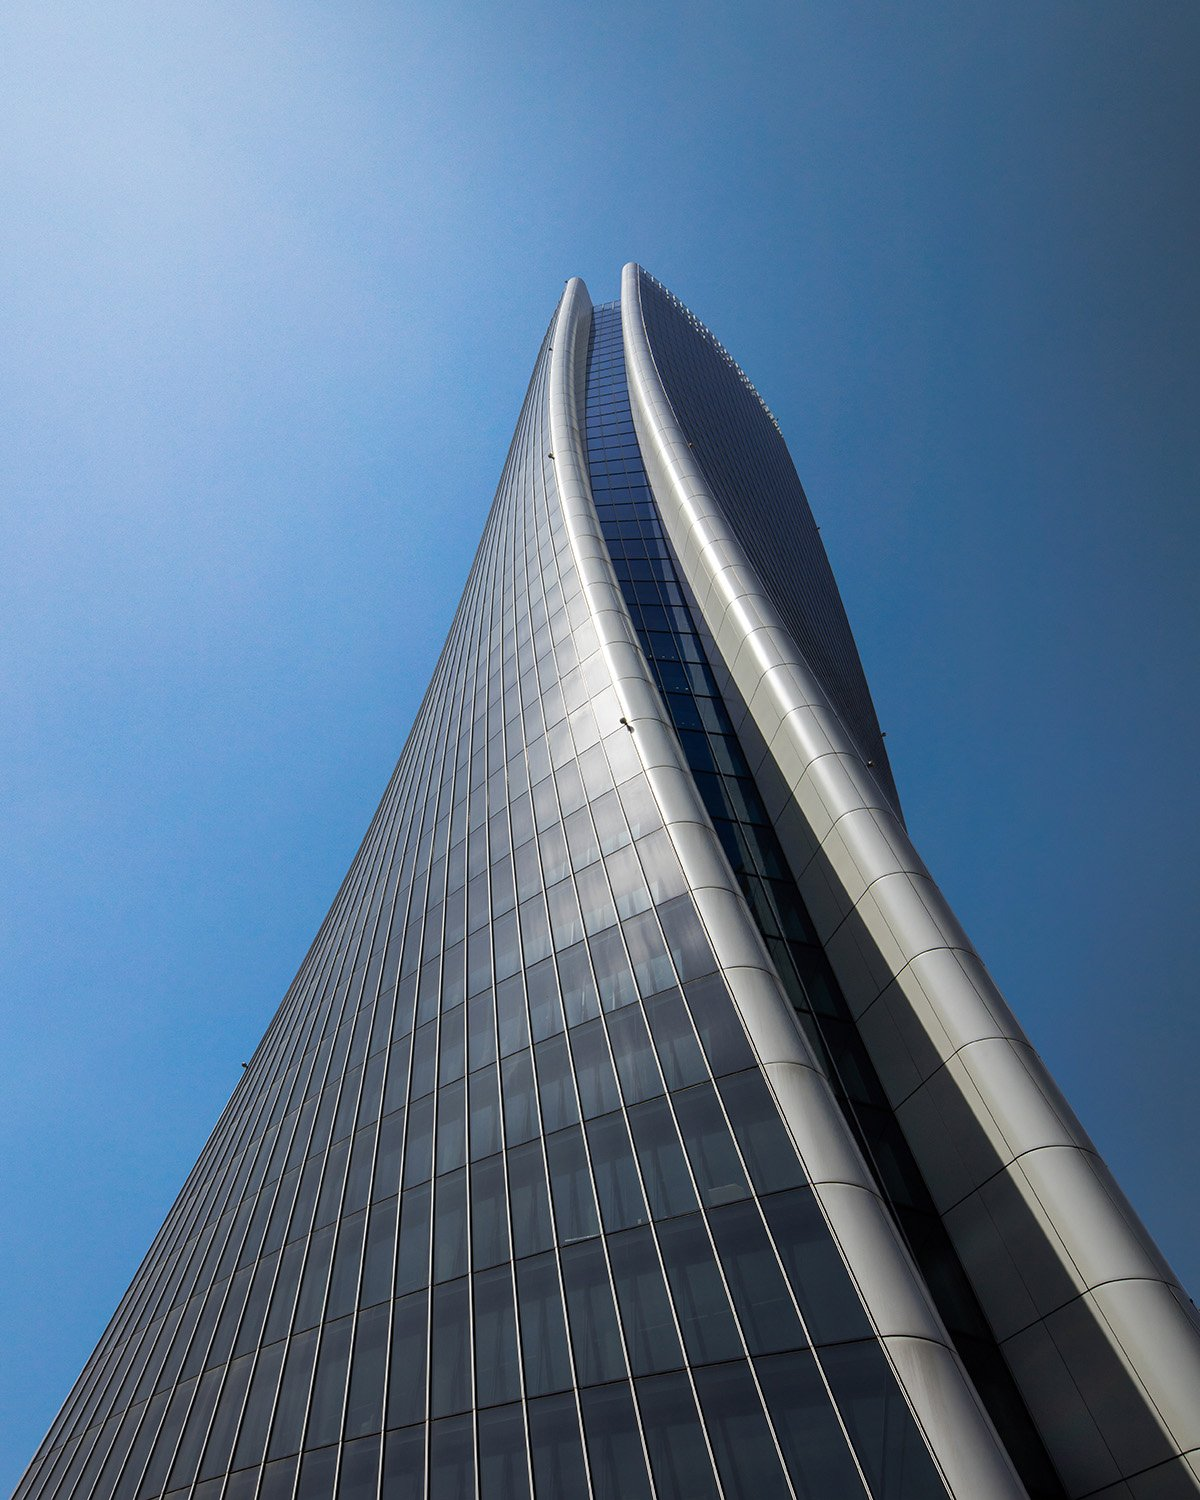 Looking up the 170m Generali Tower Photography by Luke Hayes